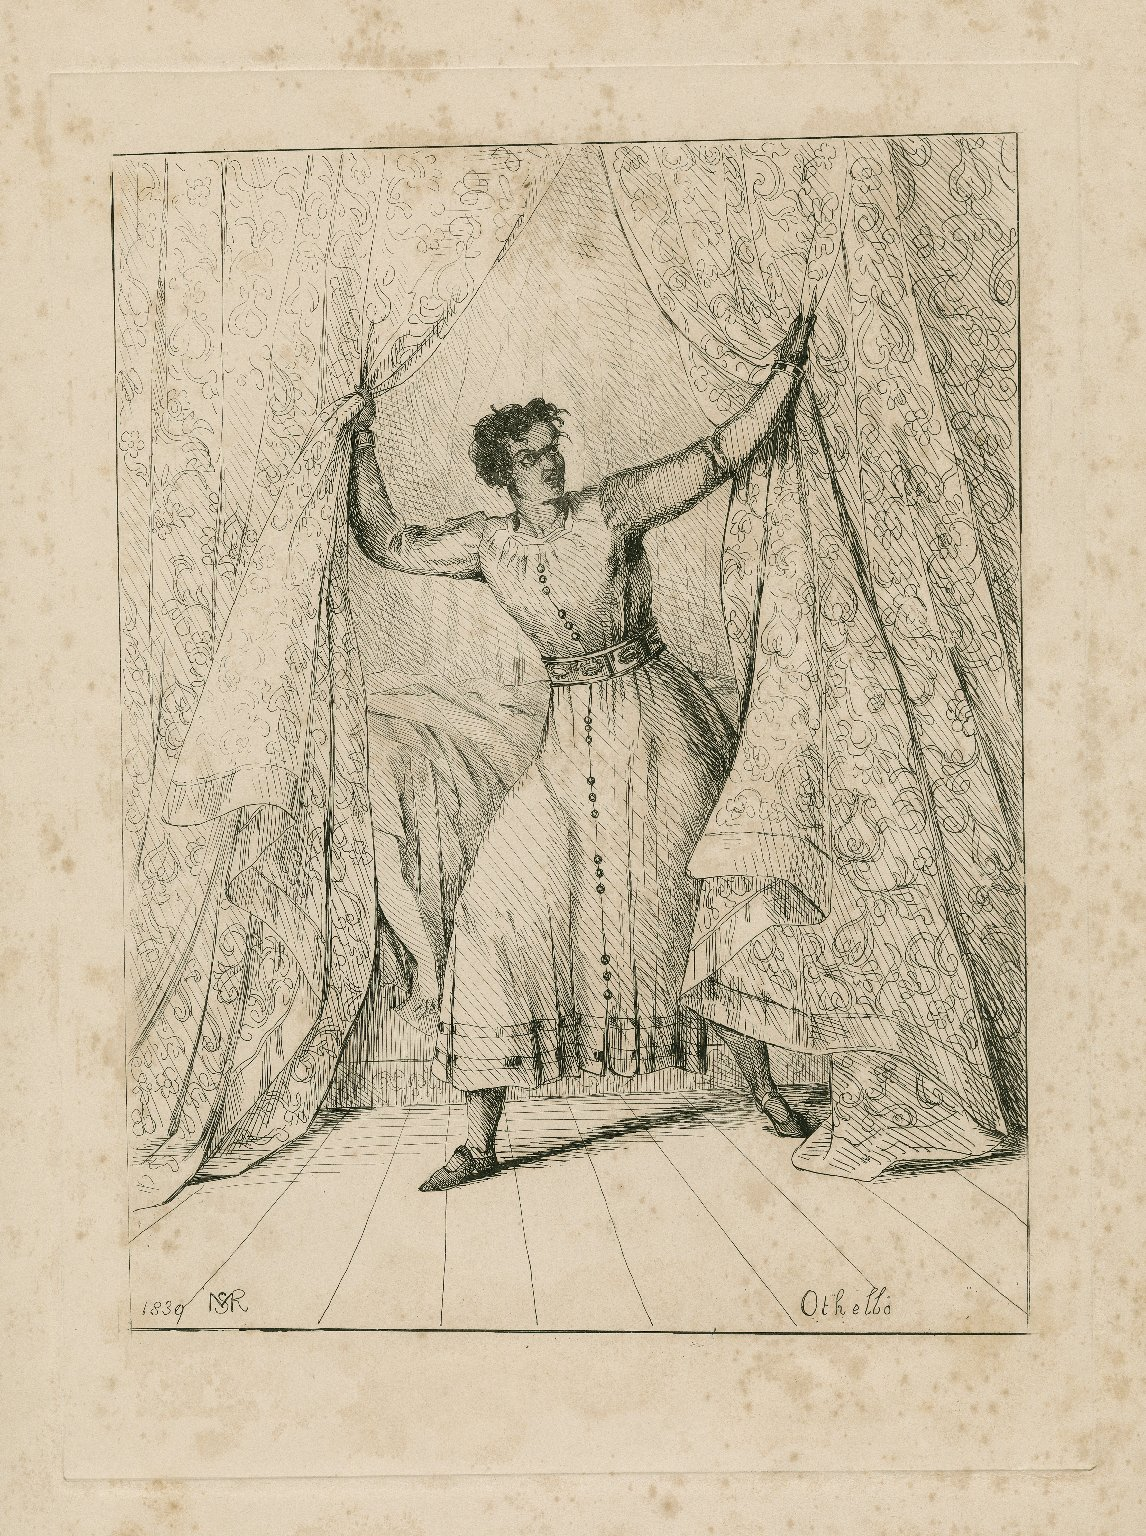 Dramatic recollections of the years 1838-9, no.1 [scenes from plays in which W. C. Macready acted] [graphic] / drawn and etched from memory by M.S.R.